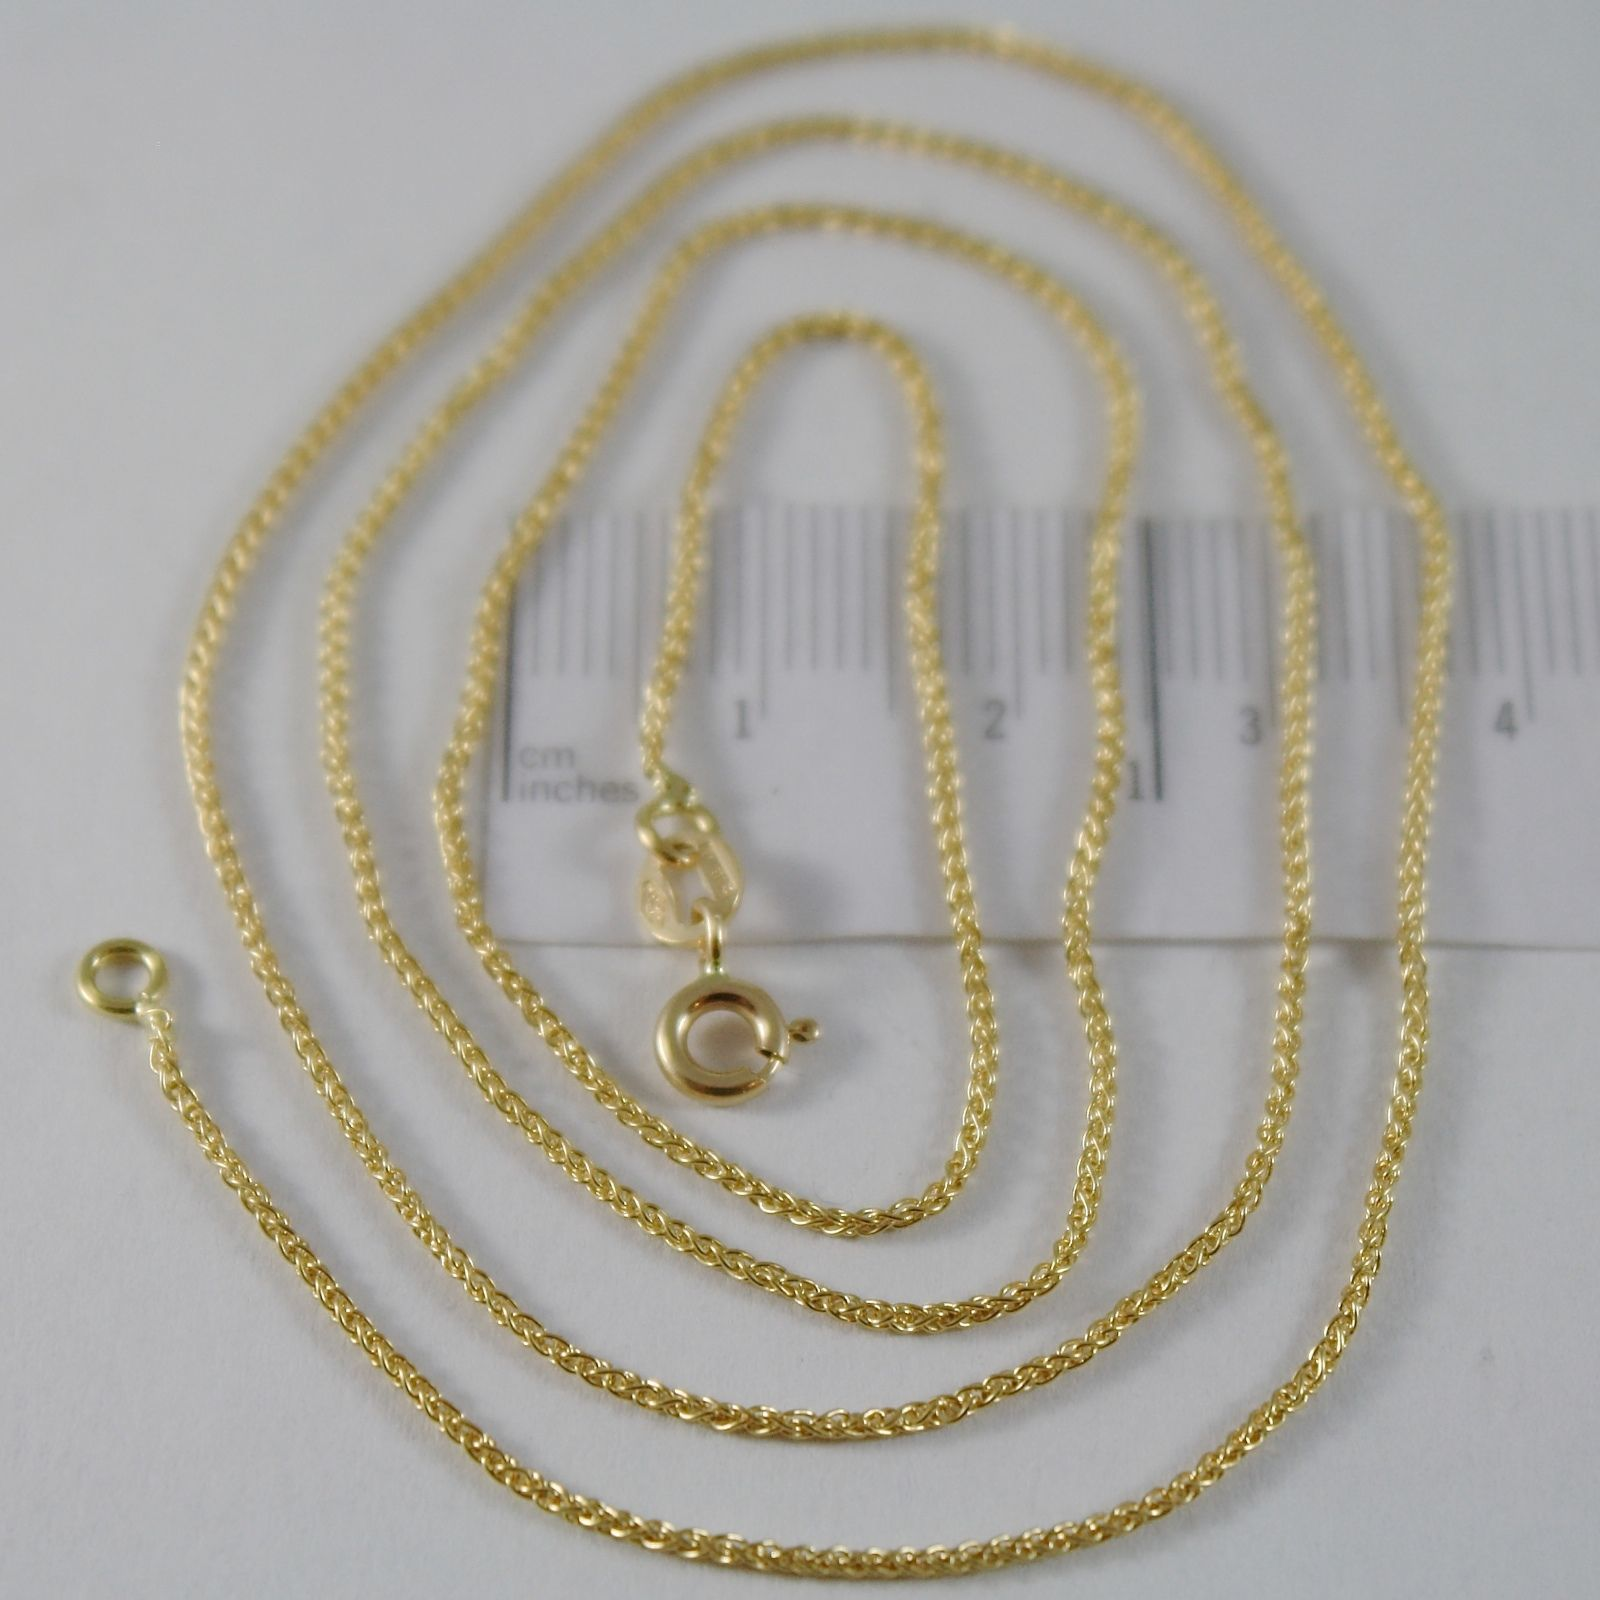 SOLID 18K YELLOW GOLD SPIGA WHEAT EAR CHAIN 18 INCHES, 1.2 MM, MADE IN ITALY